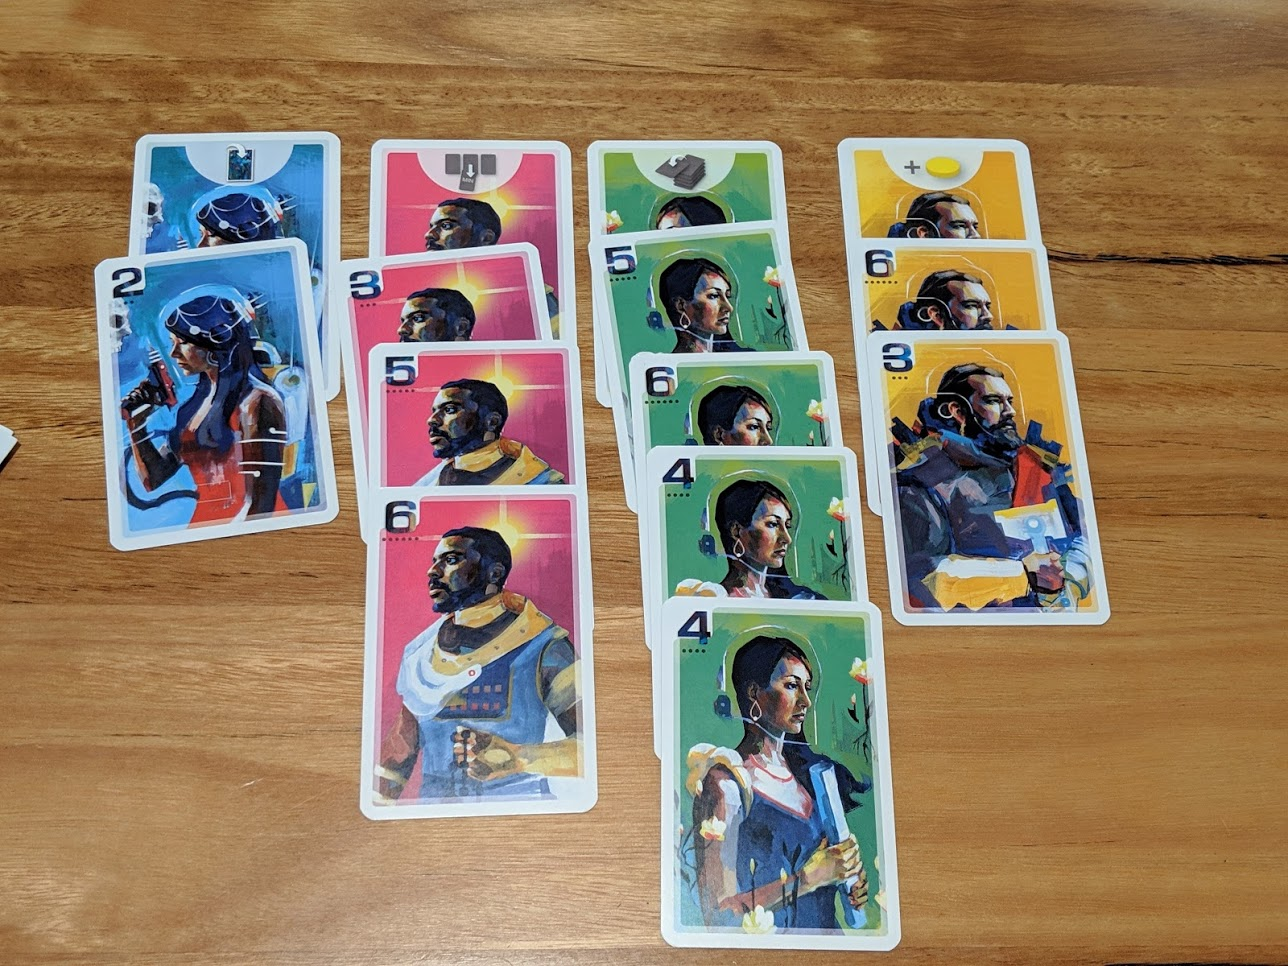 Cards of Capital Lux laid out.